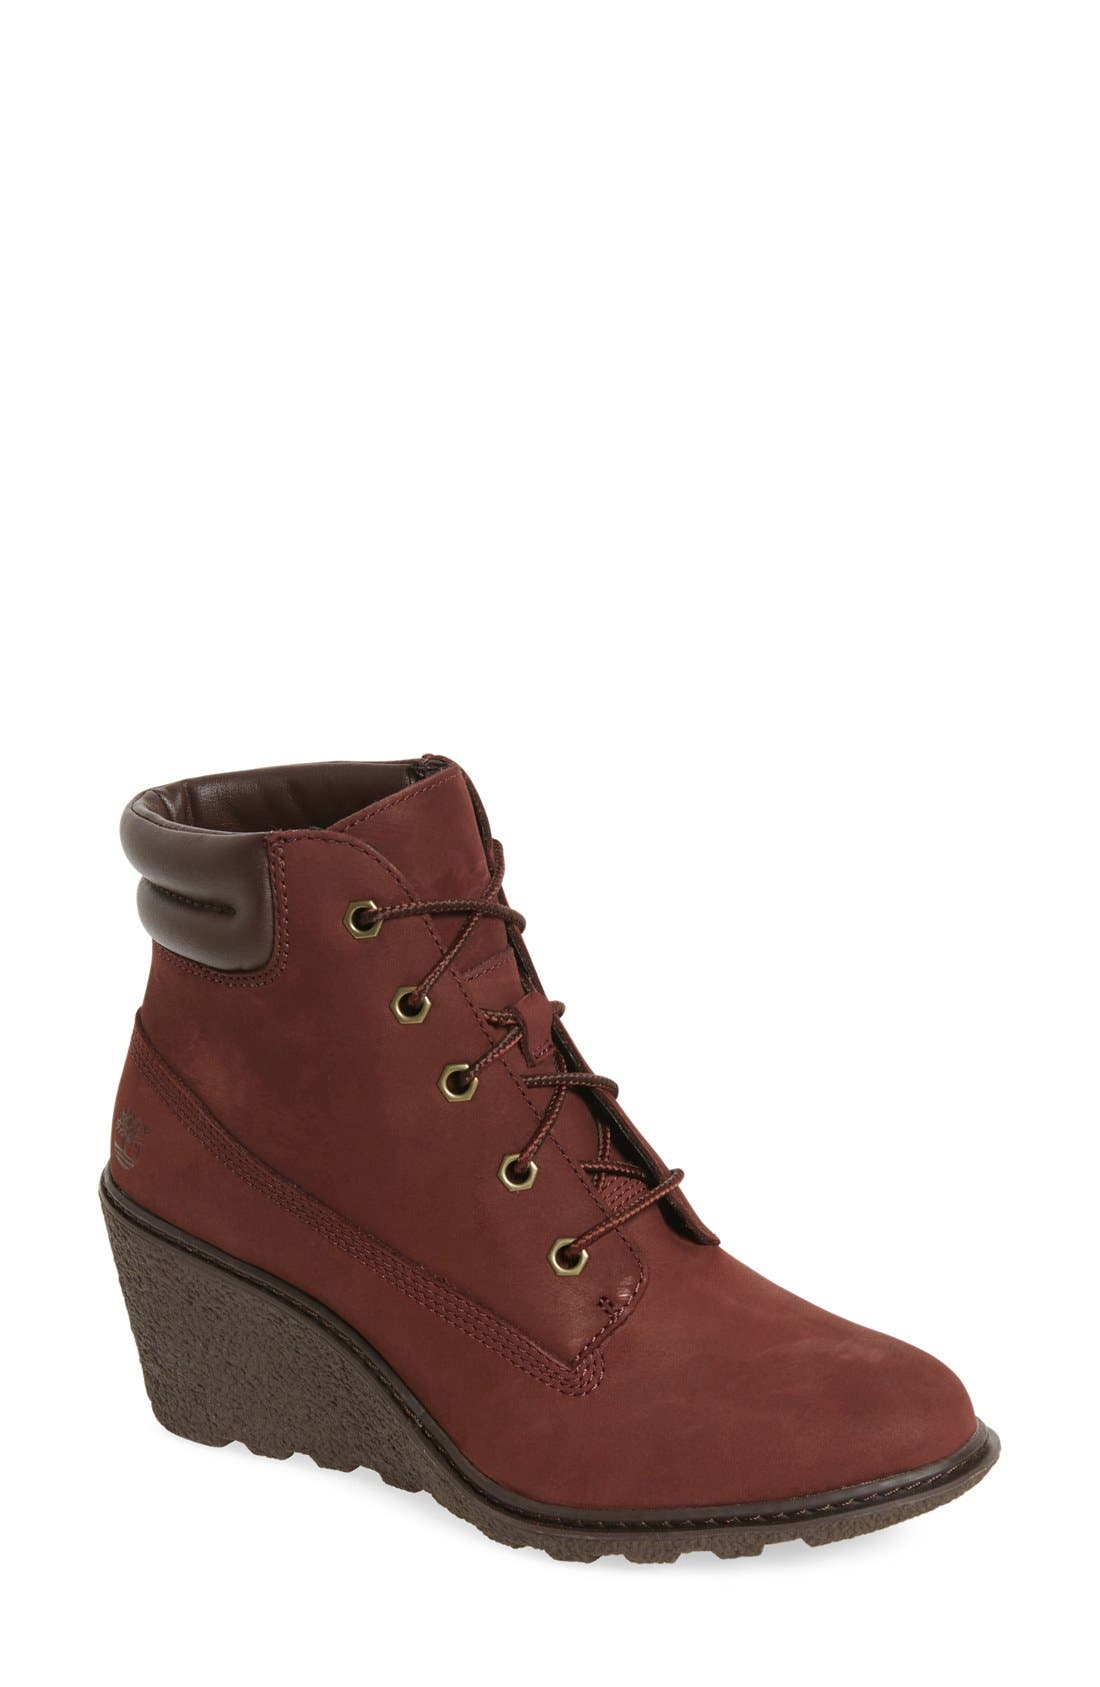 Alternate Image 1 Selected - Timberland Earthkeepers® 'Amston' Boot (Women)